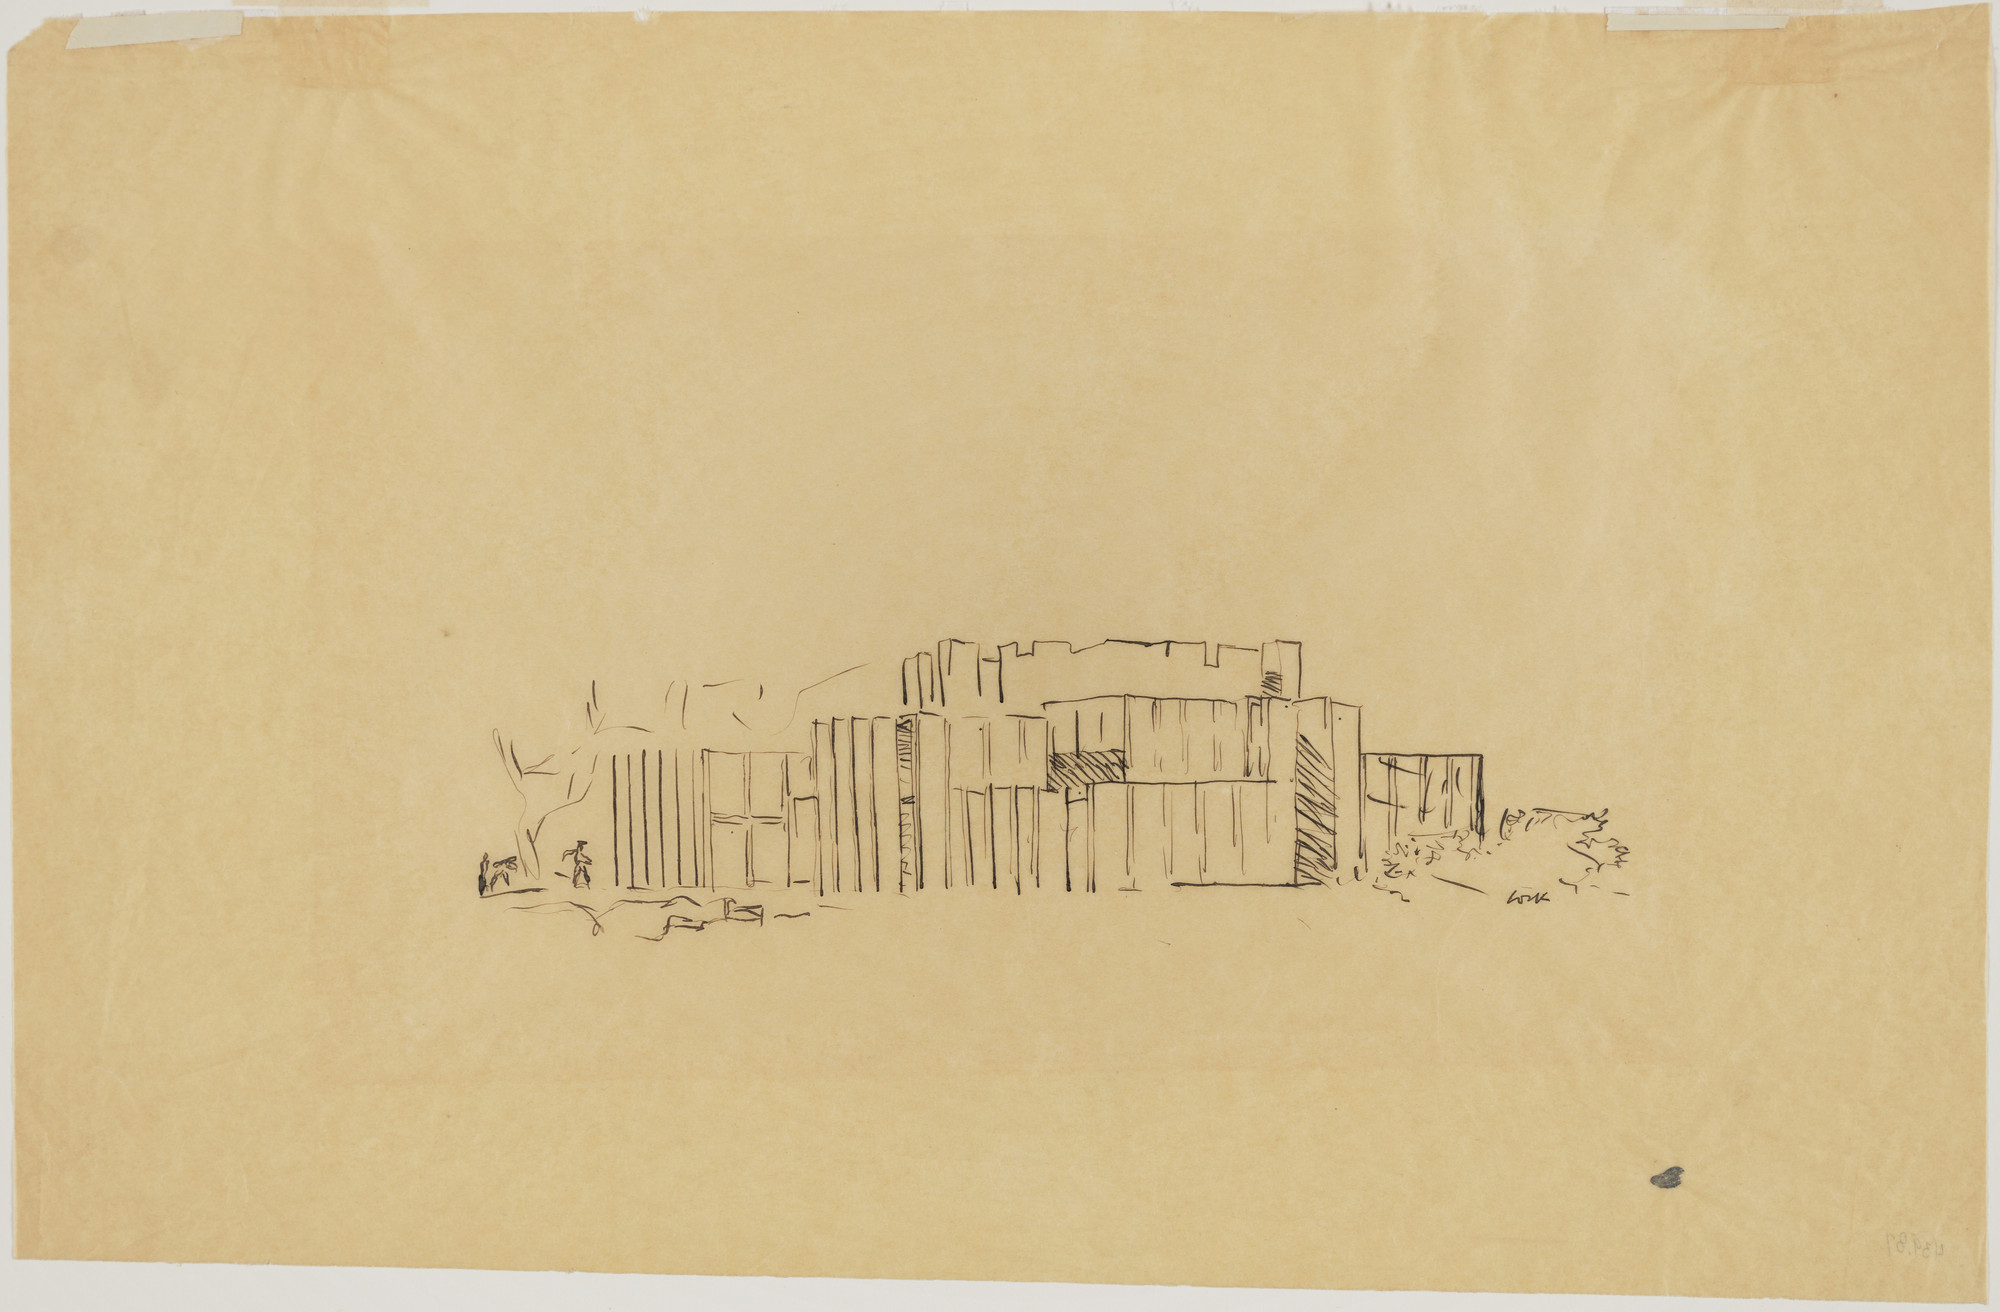 Louis I. Kahn. Mr. and Mrs. Lawrence Morris House, Mount Kisco, New York, Perspective. 1958